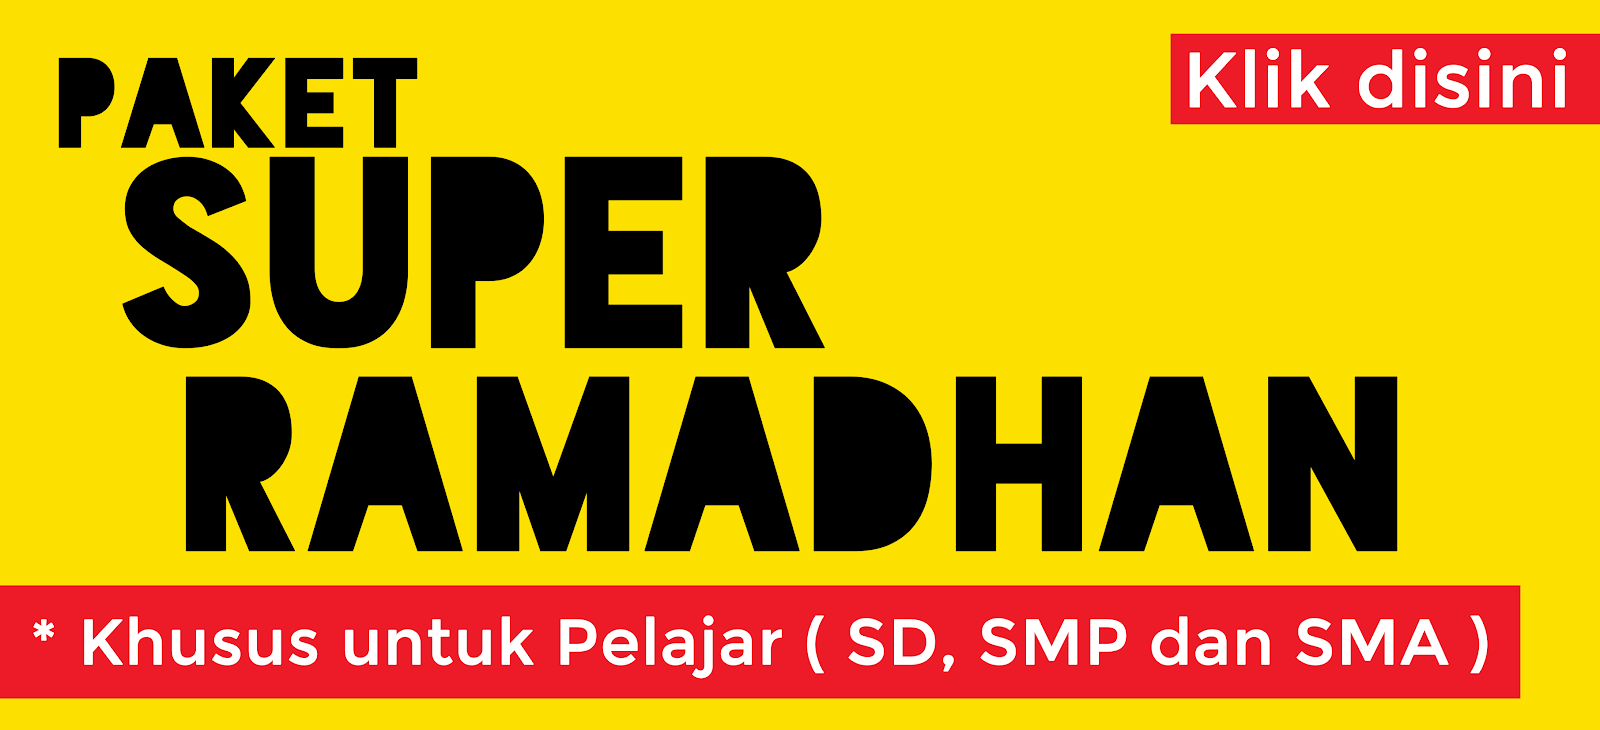 Paket Holiday Super Ramadhan